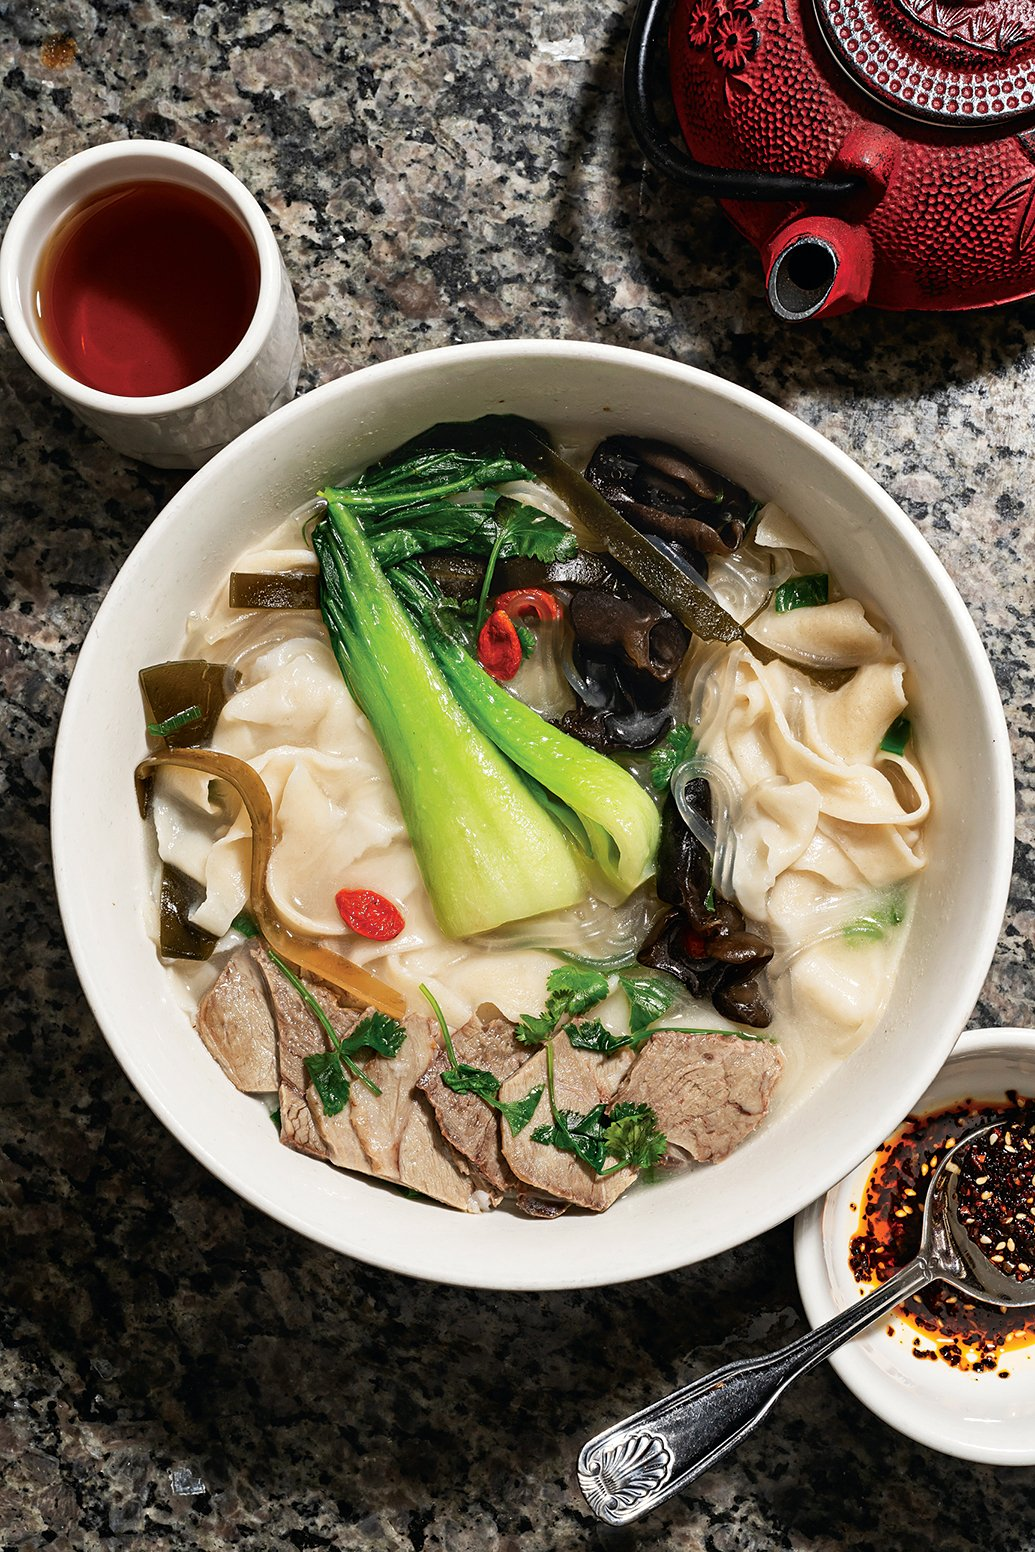 Henan-style hand pulled noodles with lamb.